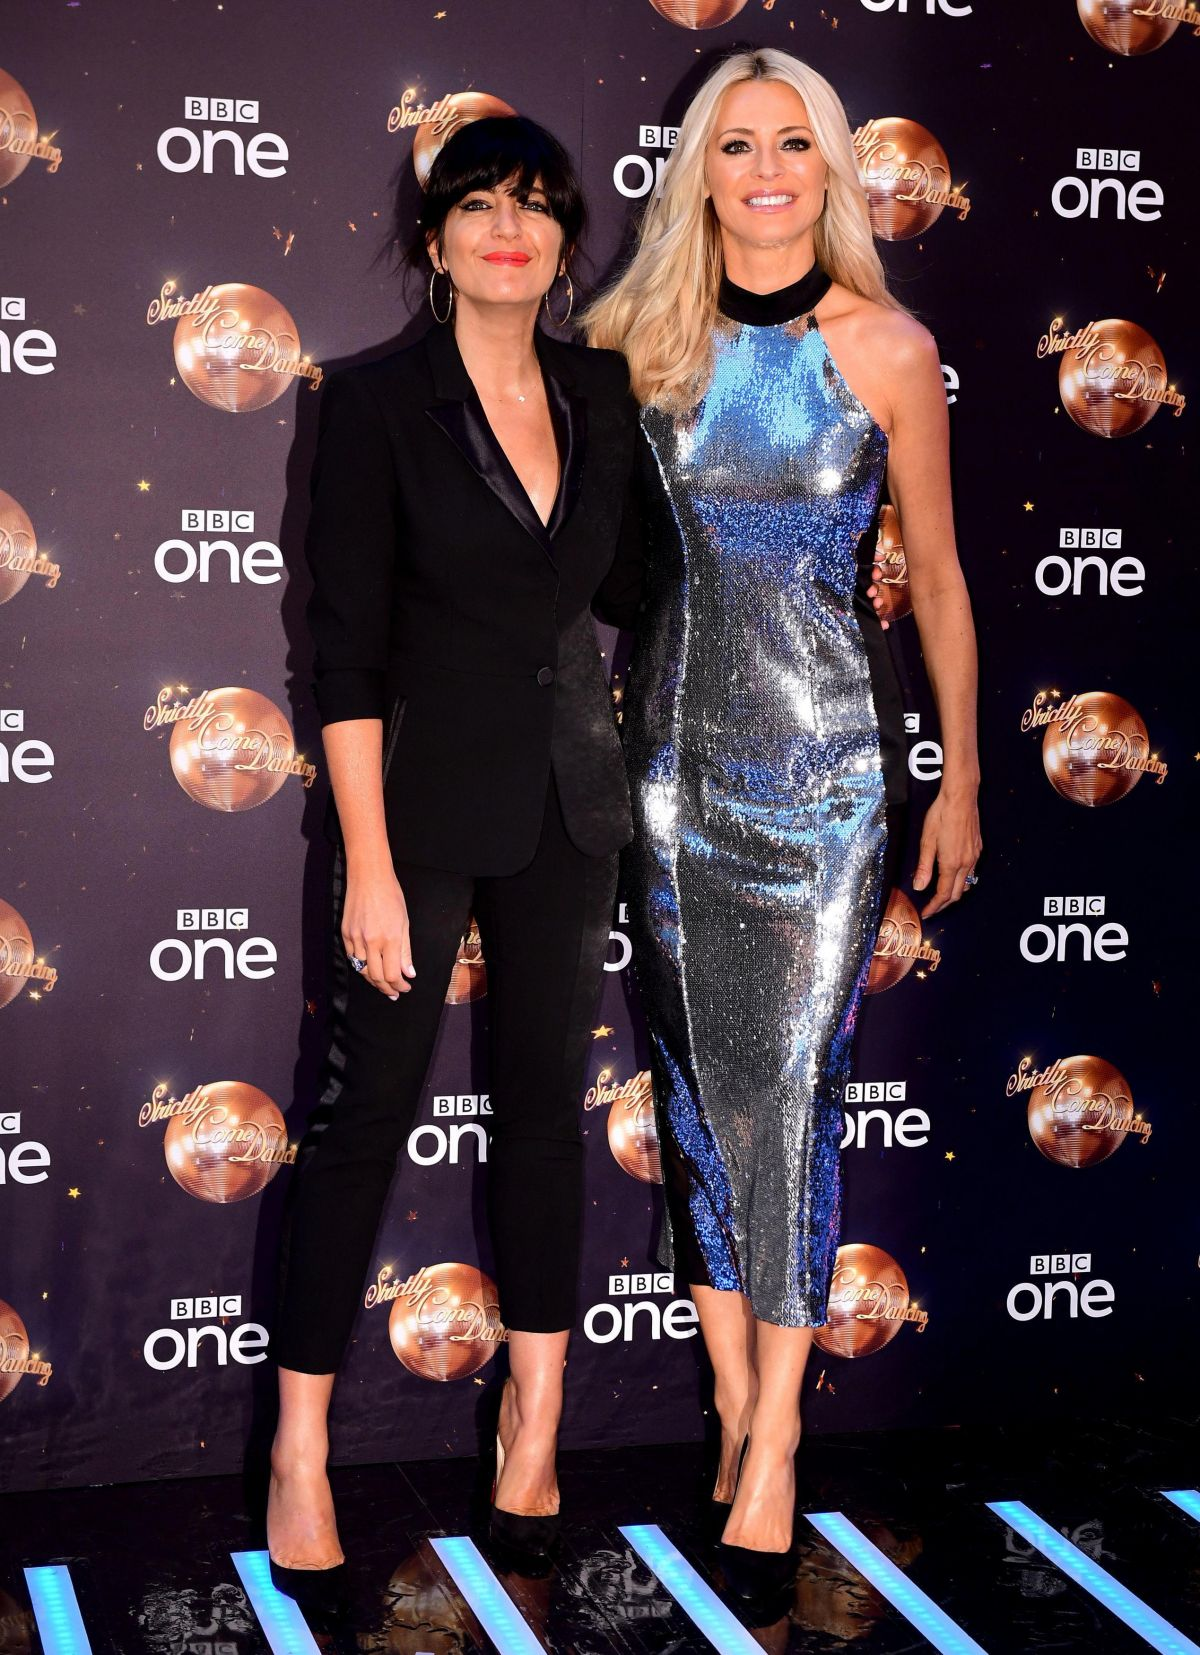 Claudia Winkleman and Tess Daly reveal Strictly line-up news as filming finally starts picture